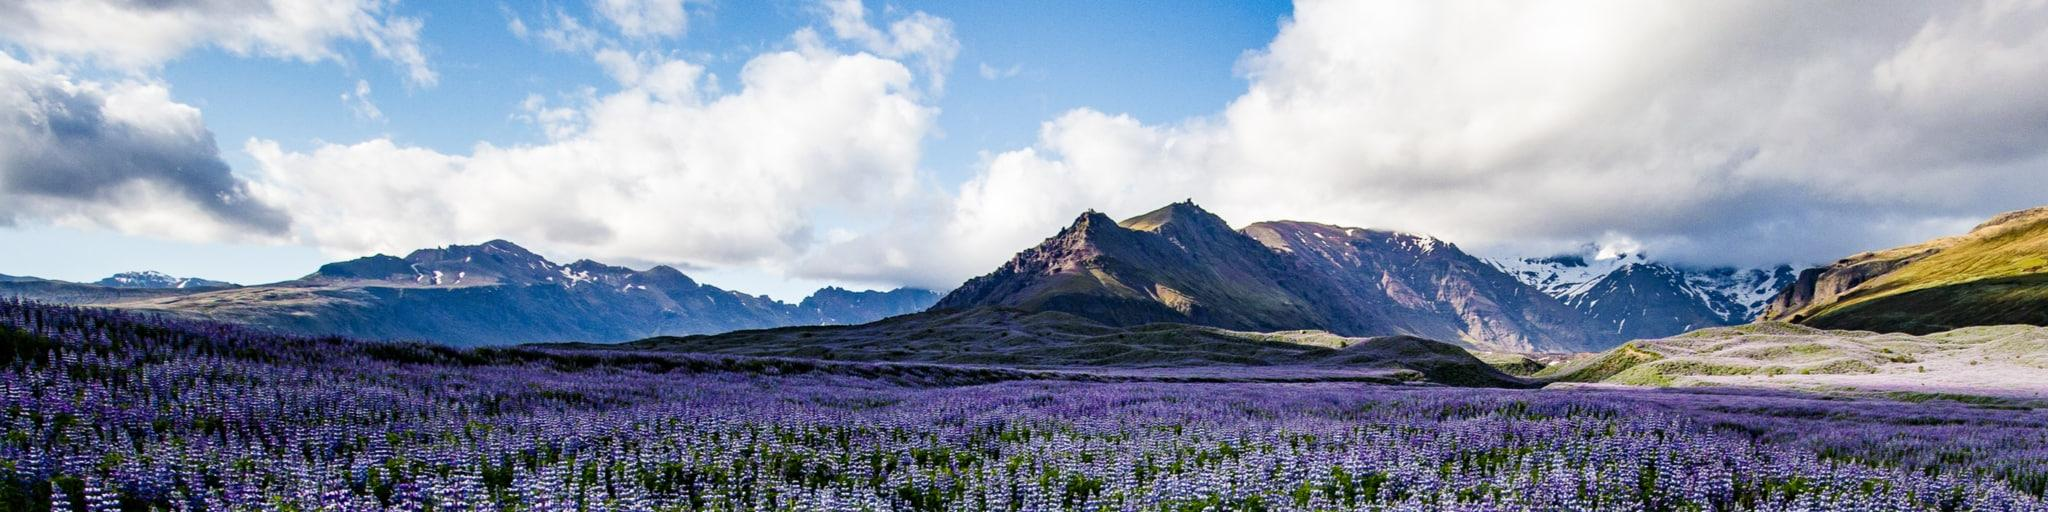 Flowering purple lupine field in front of Vatnajökull National Park mountains in Iceland